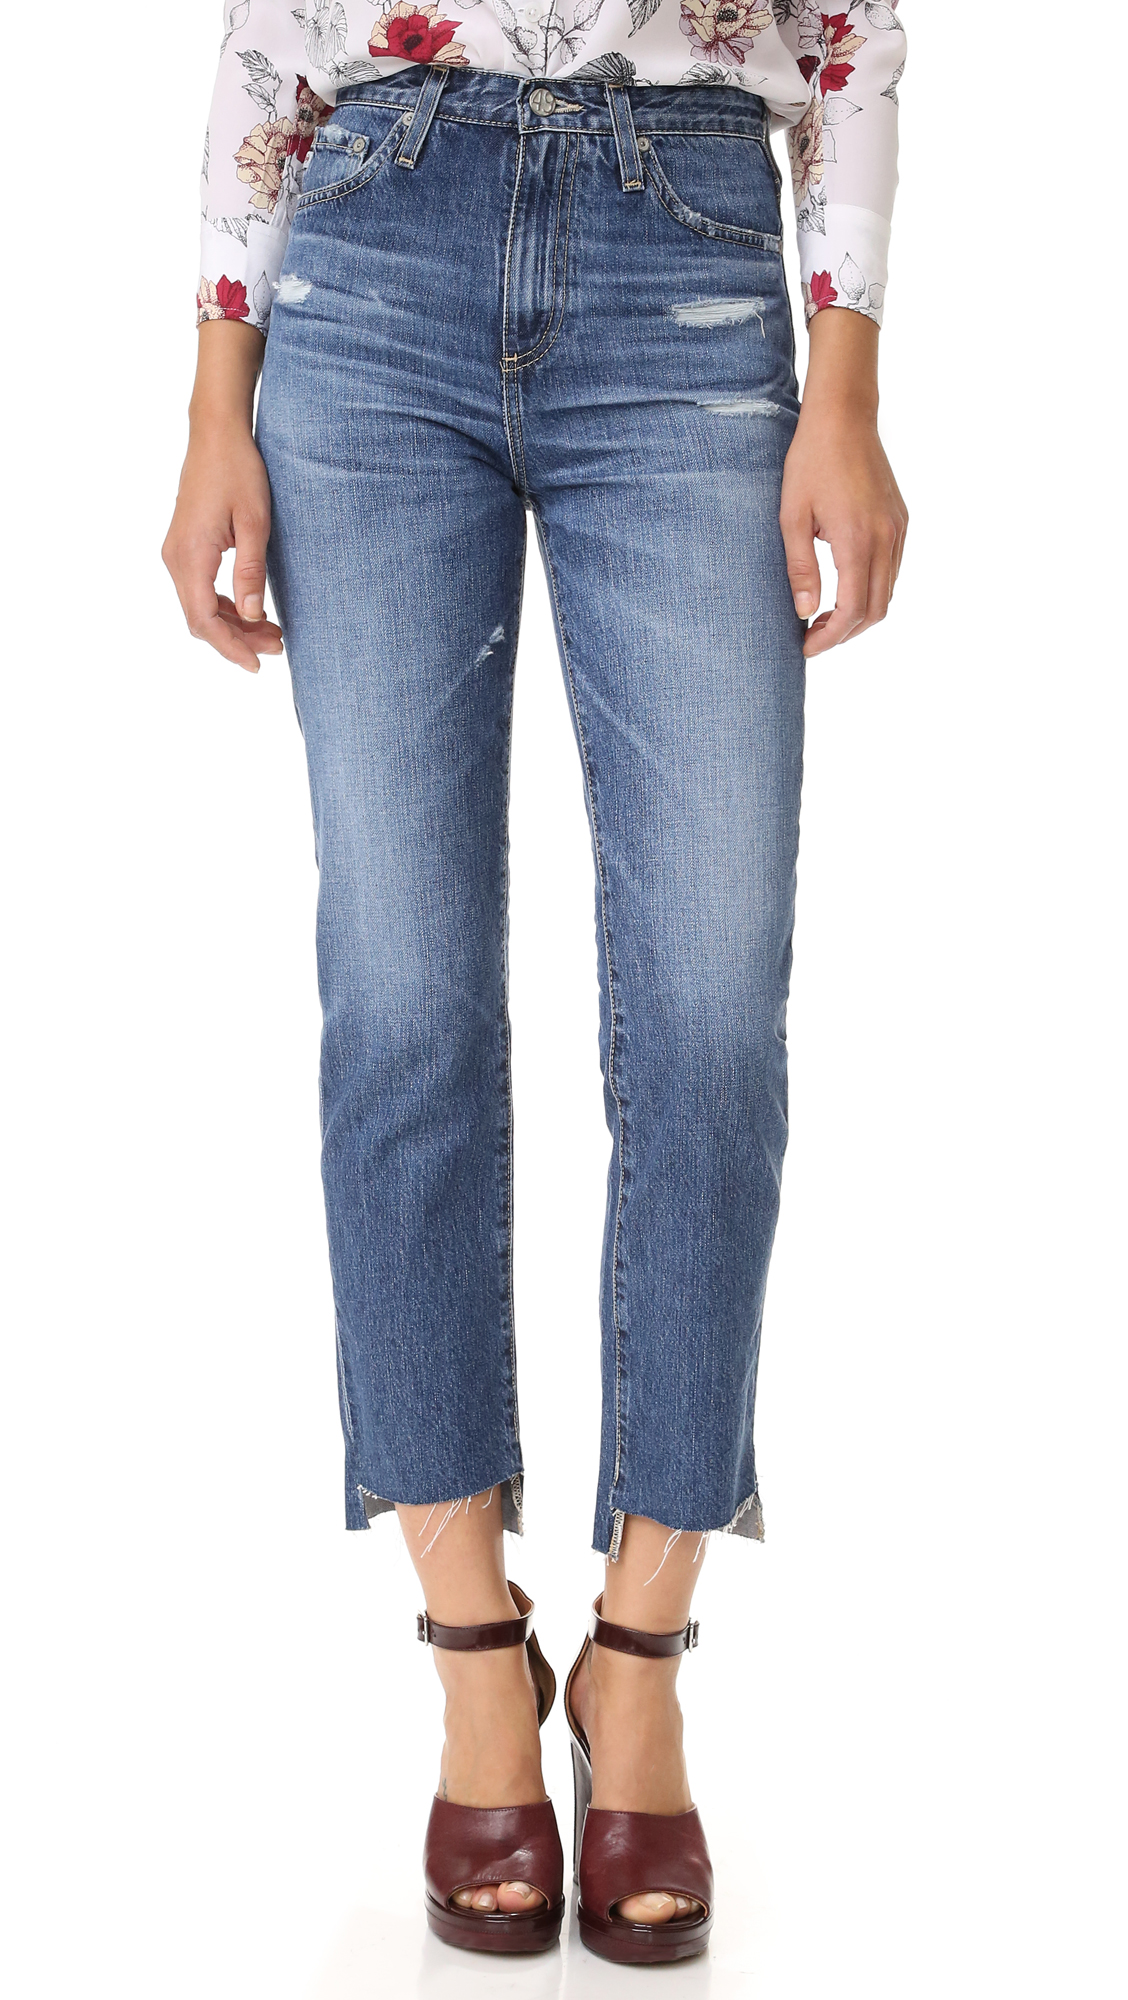 Shredded holes and whiskering complement the favorite pair feel of these high waisted AG jeans. Raw, notched cuffs. 5 pocket styling. Button closure and zip fly. Fabric: Denim. 100% cotton. Wash cold. Imported, Mexico. Measurements Rise: 10.75in / 27.5cm